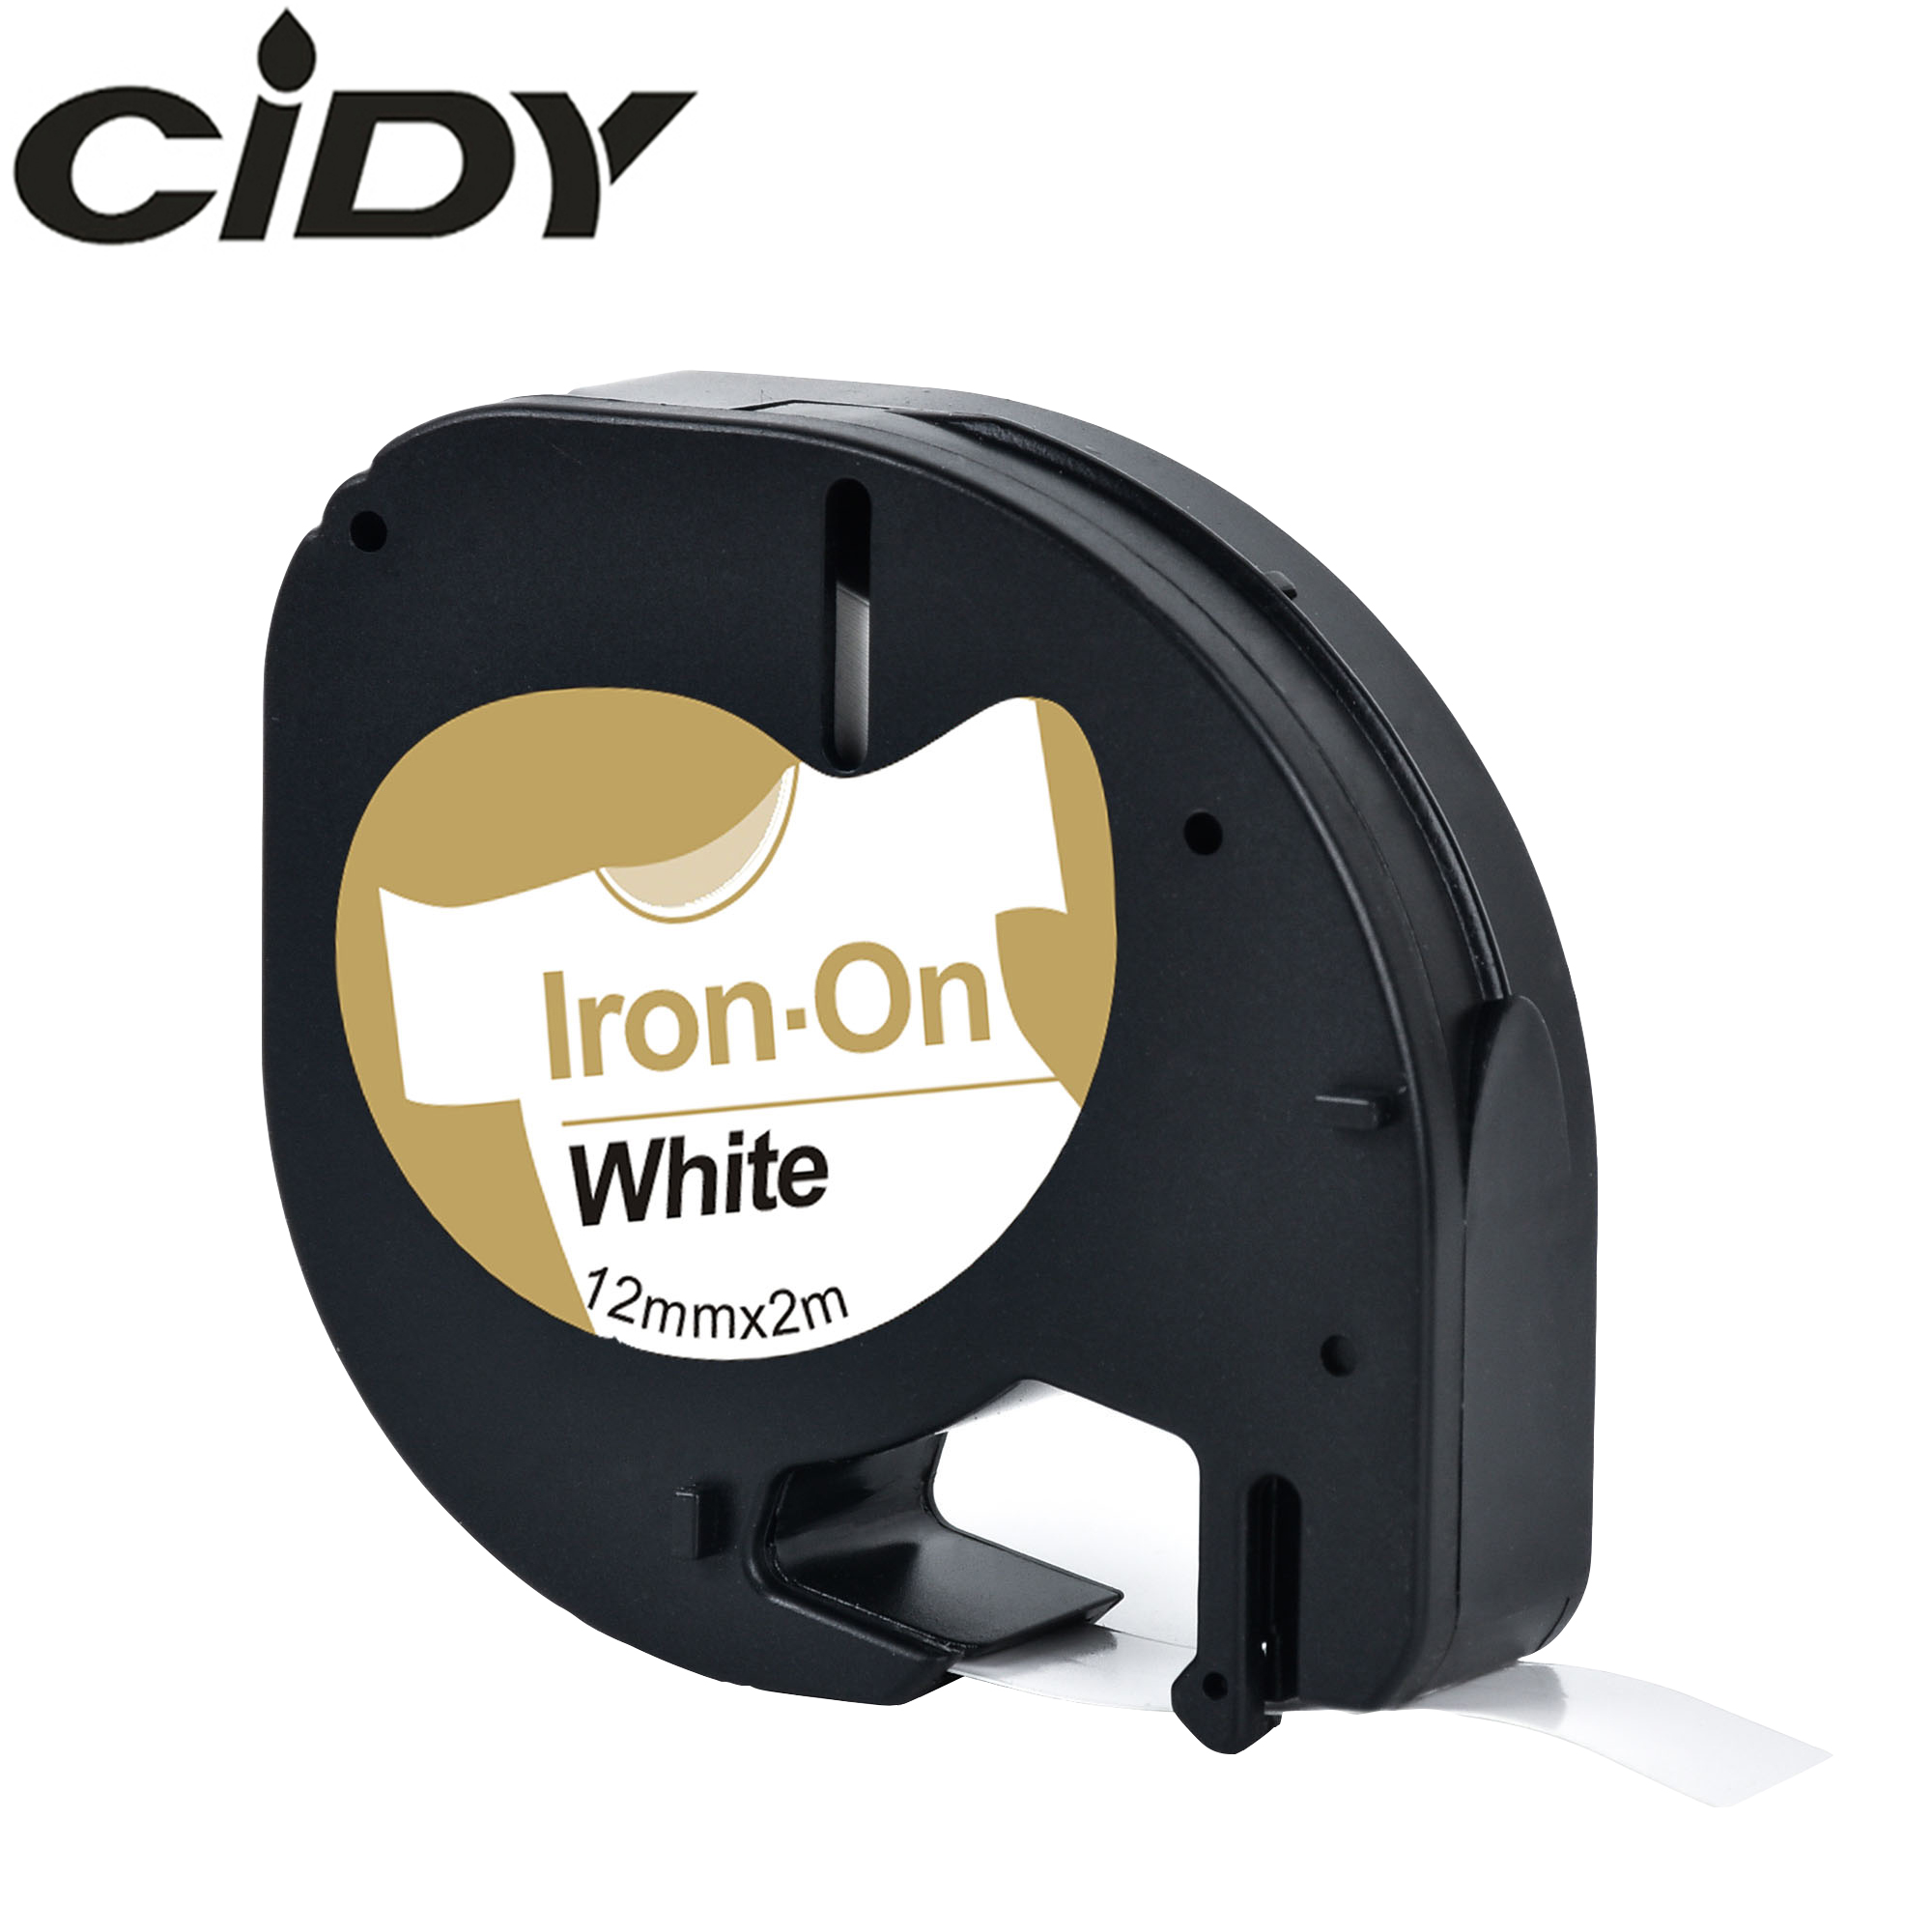 CIDY For Dymo LT 18769 18771 18768 18770  Fabric Iron-on Black On White 12mm*2m Compatible Dymo Letratag 91201 Tape For LT-100H